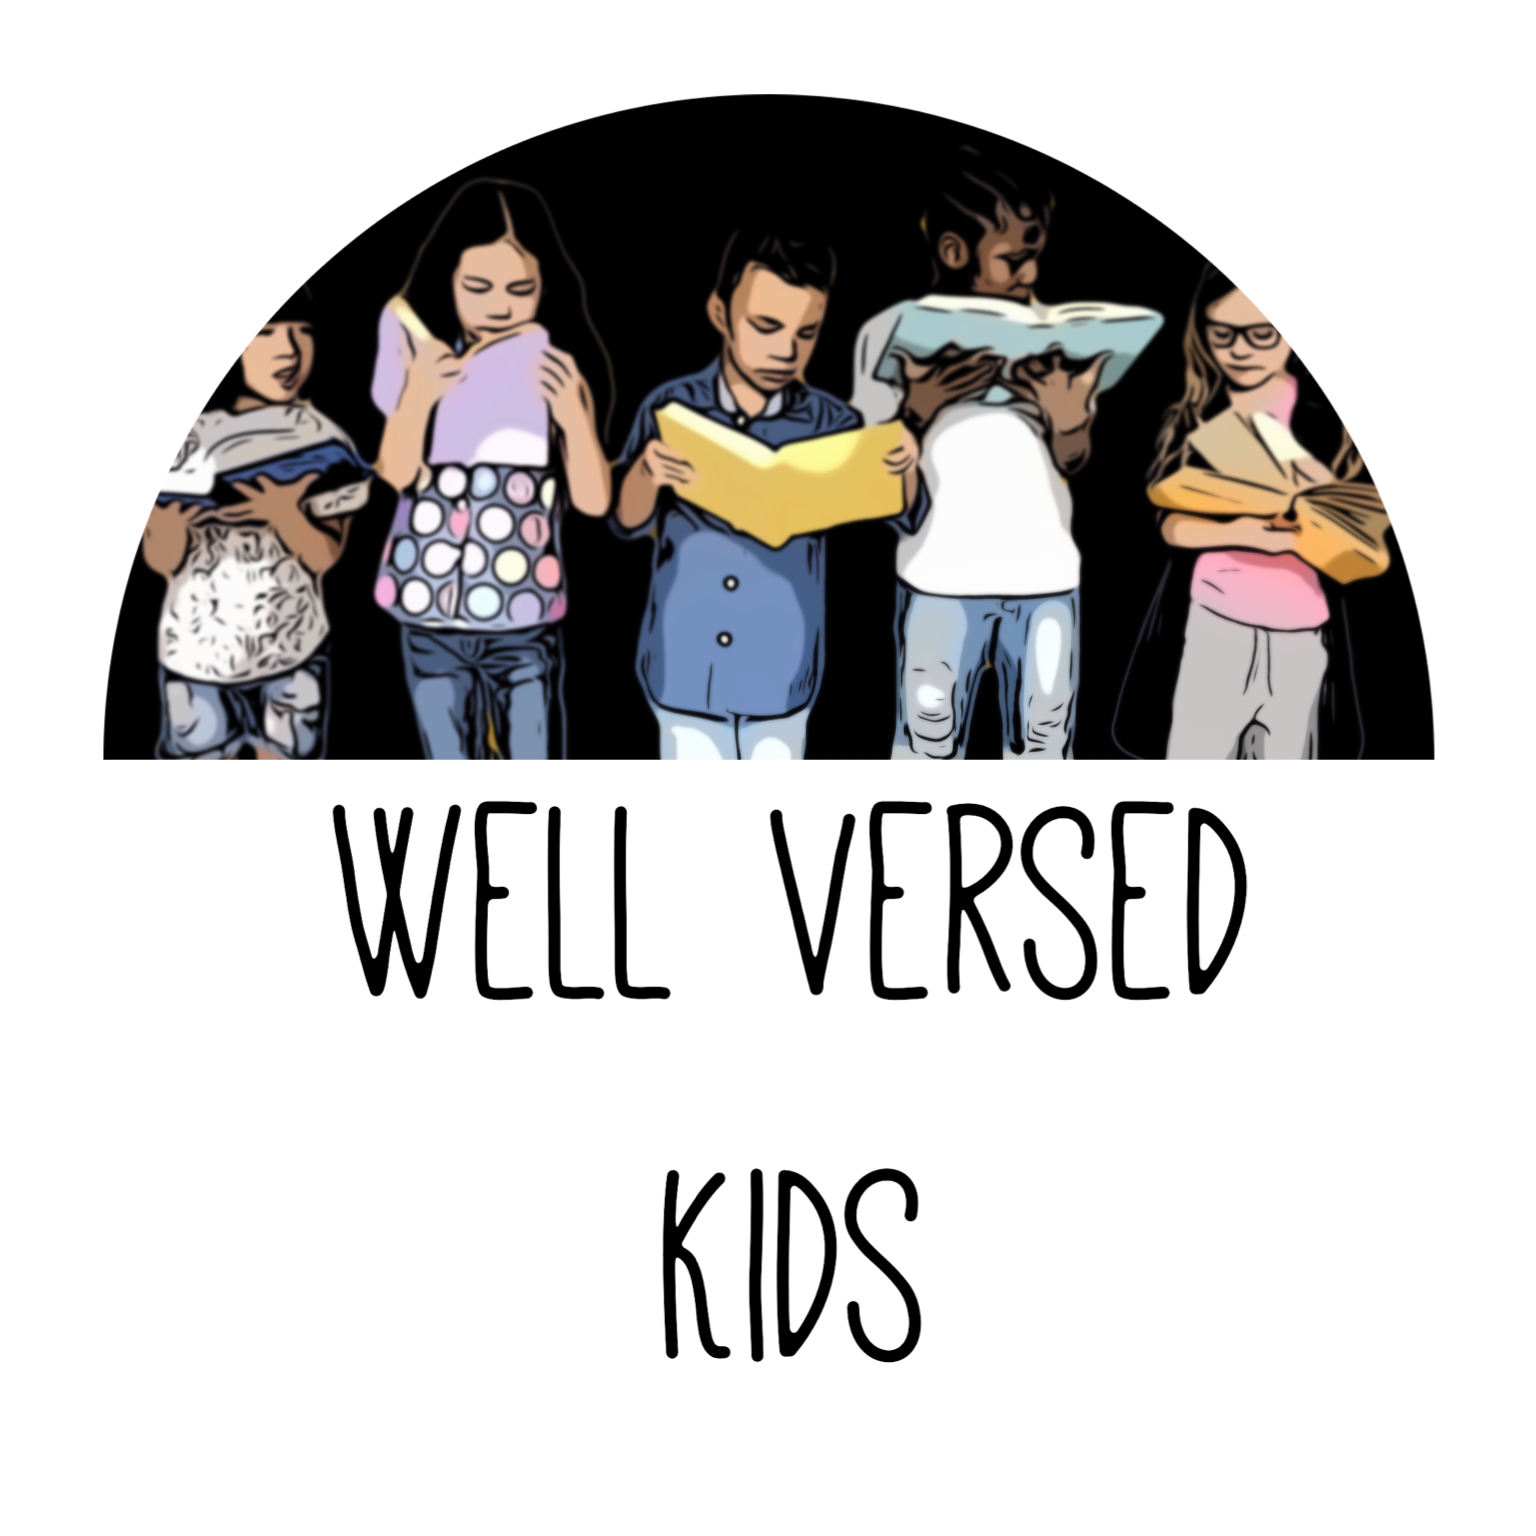 Well Versed Kids: January Book Releases